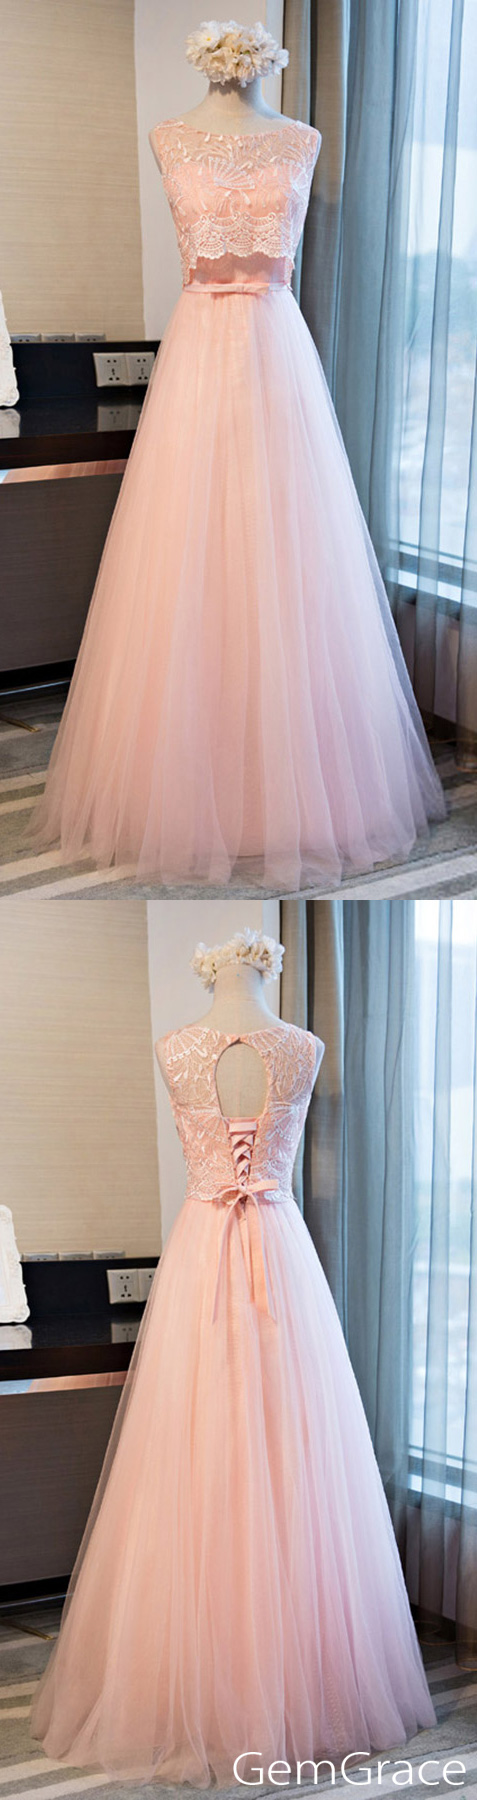 Romantic aline scoop neck floorlength tulle prom dress with